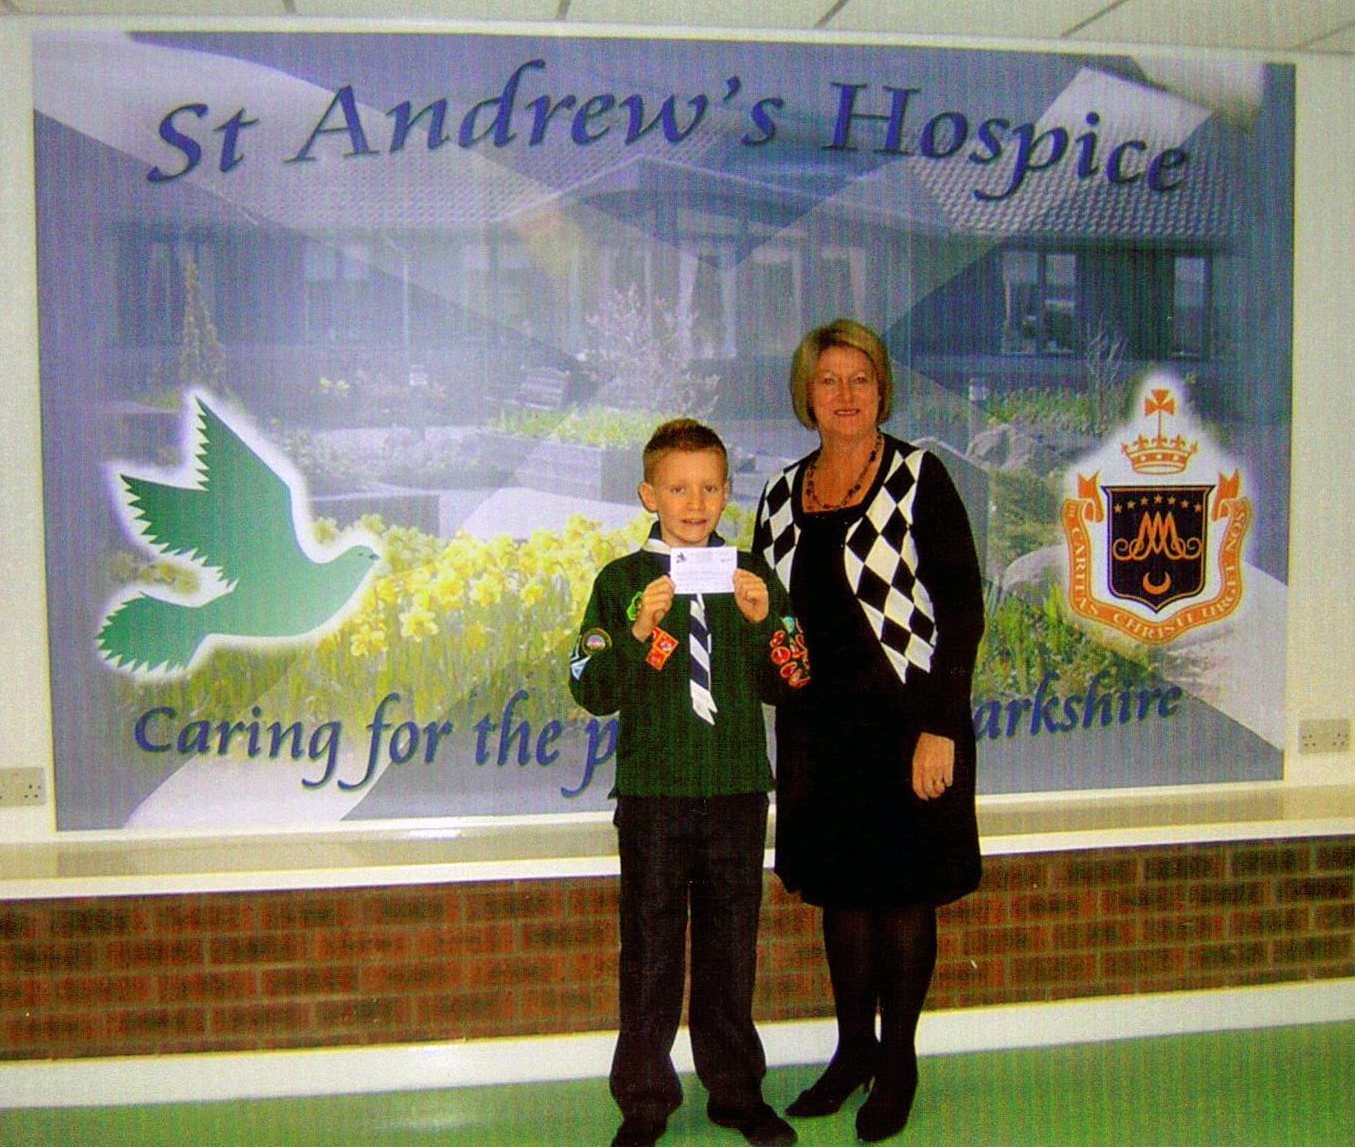 Scott presents the money to the Hospice